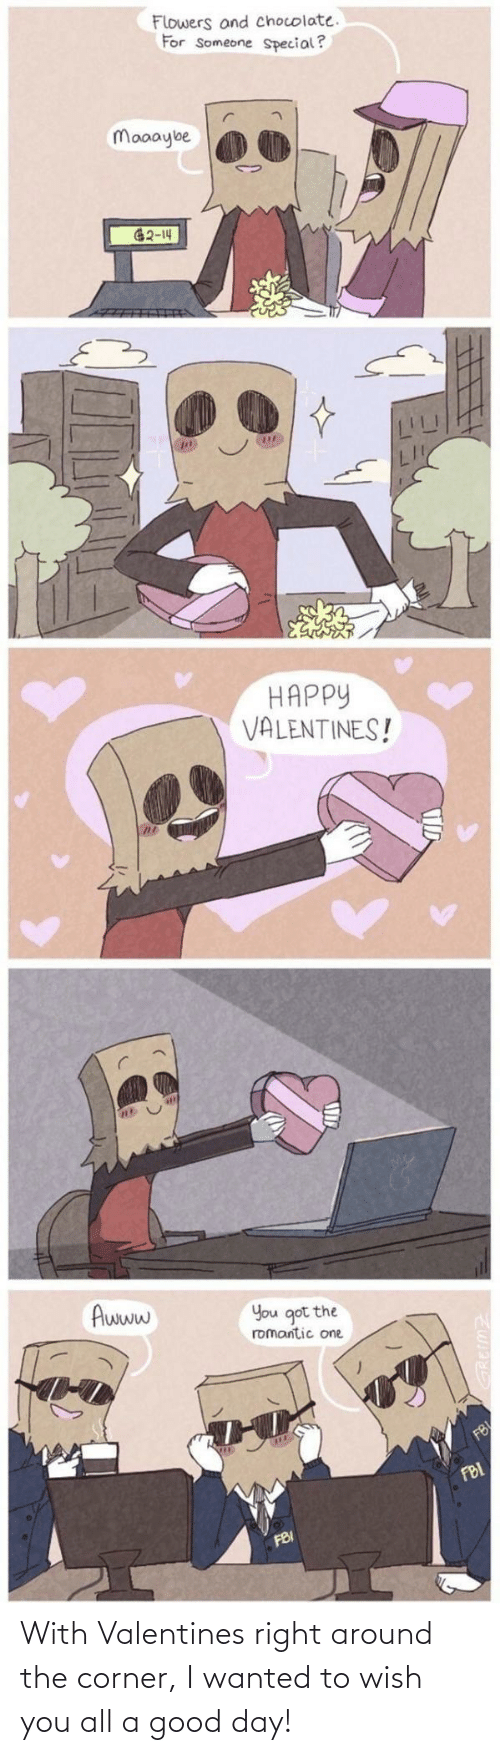 valentines: With Valentines right around the corner, I wanted to wish you all a good day!